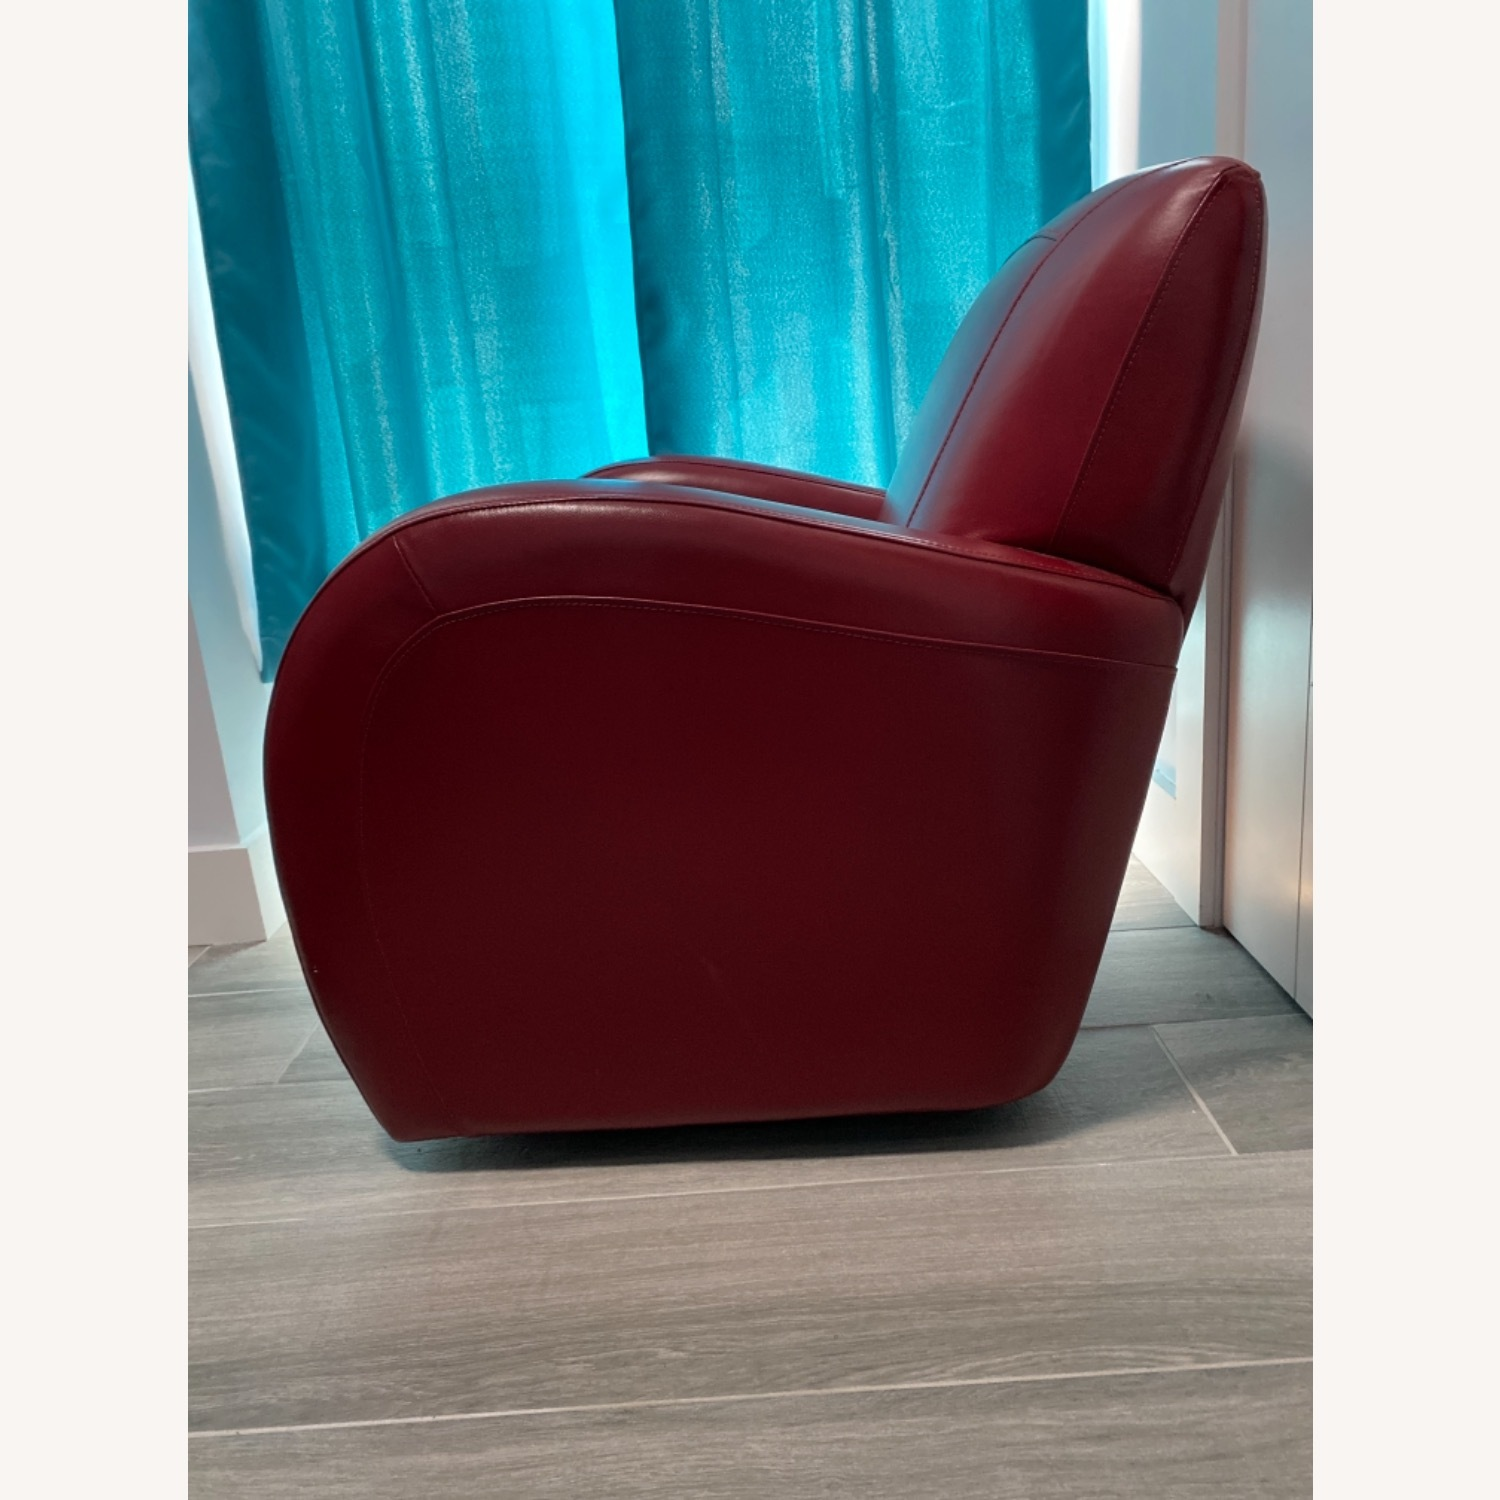 Bob's Discount Furniture Red Leather Accent Chair - image-5